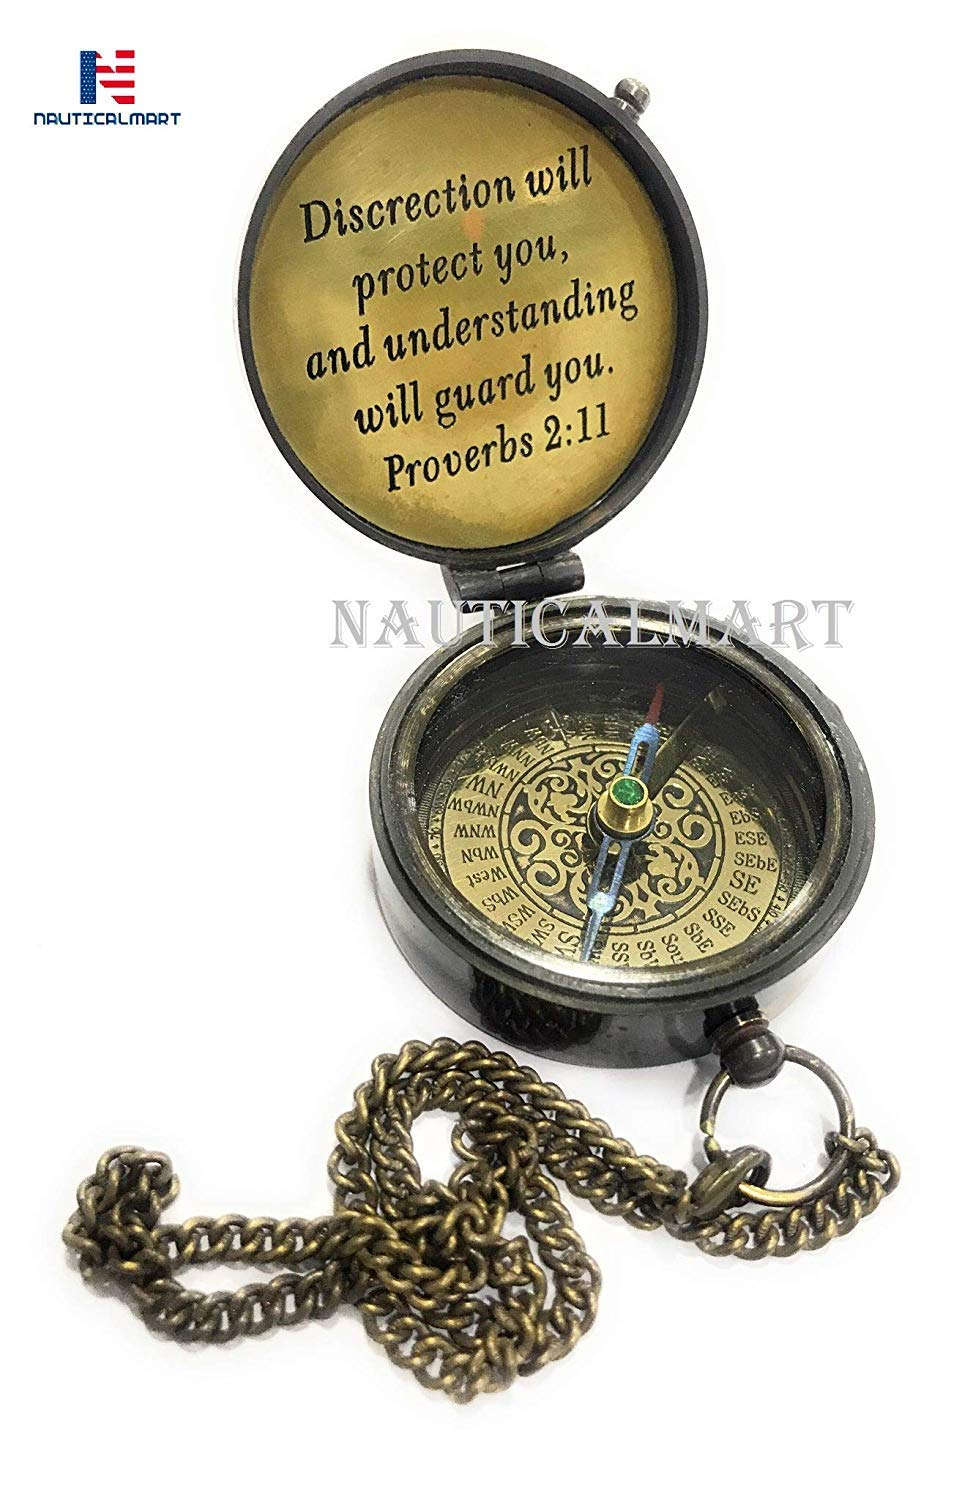 Brass Antique Compass Engraved Discreation Will Protect You - Working Compass, Confirmation Gift Ideas, Baptism Gifts, Birthday, get Well Soon, Graduation Gifts